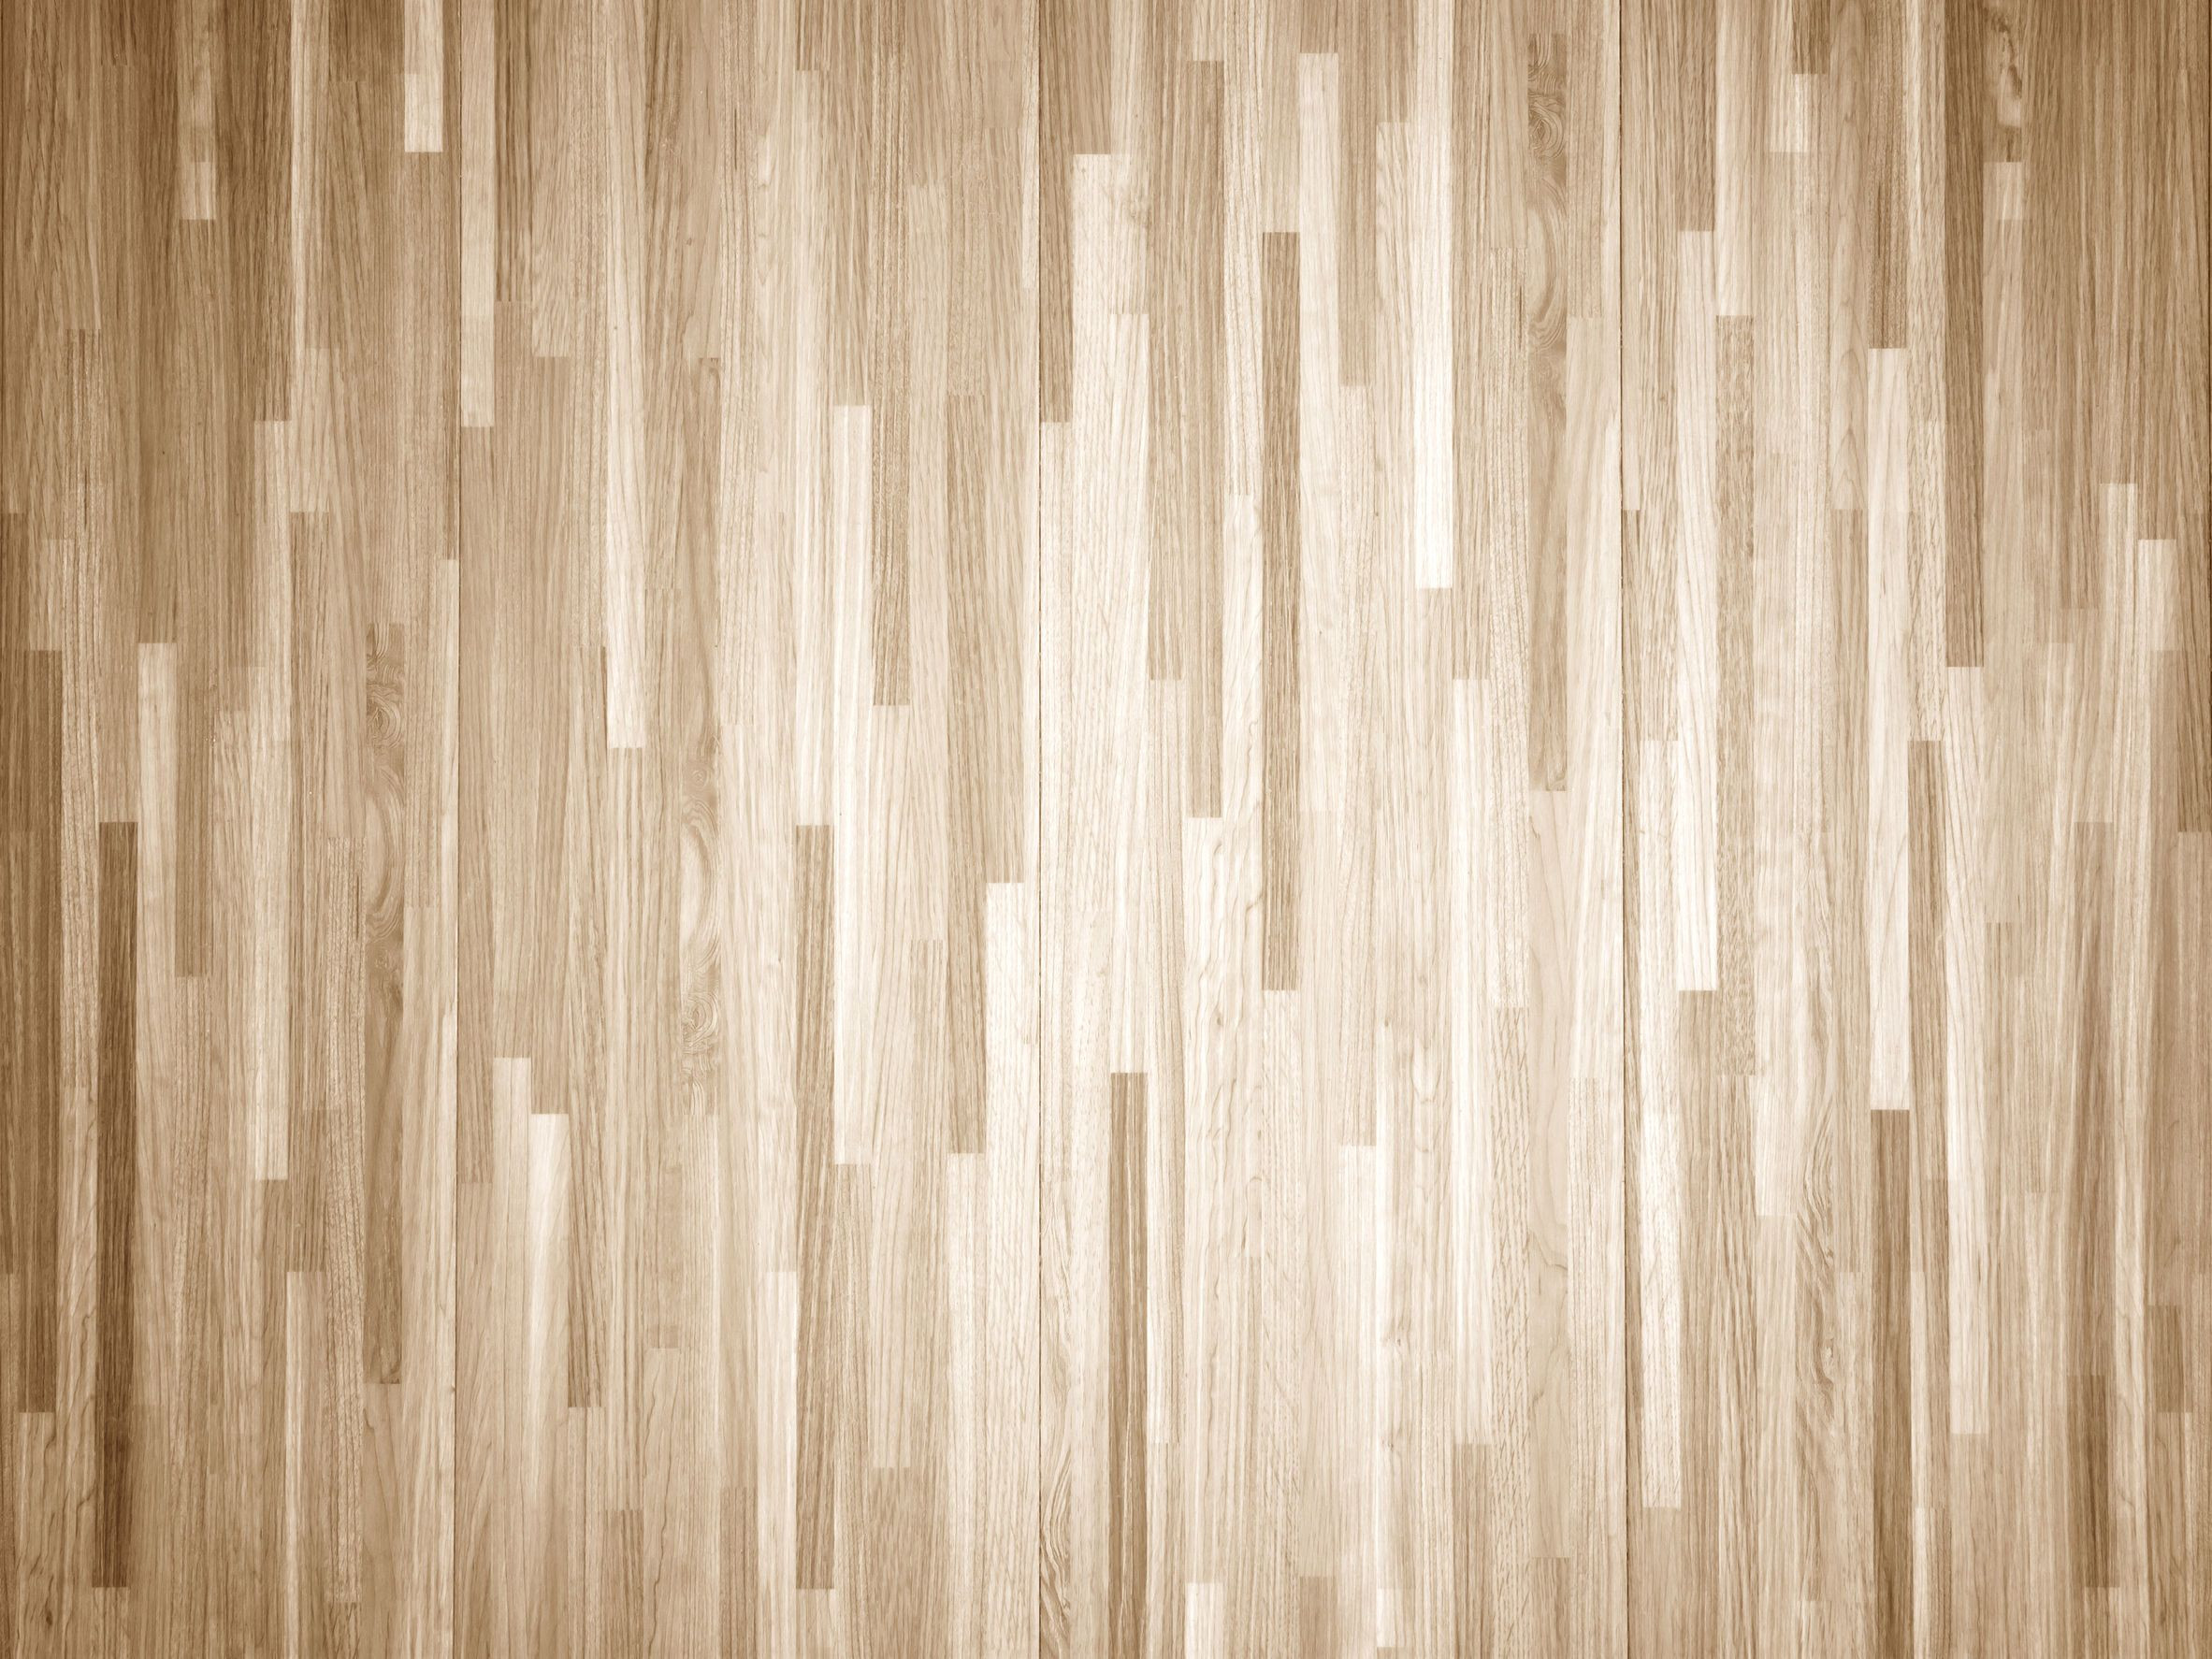 hardwood floor wax finish of how to chemically strip wood floors woodfloordoctor com in you